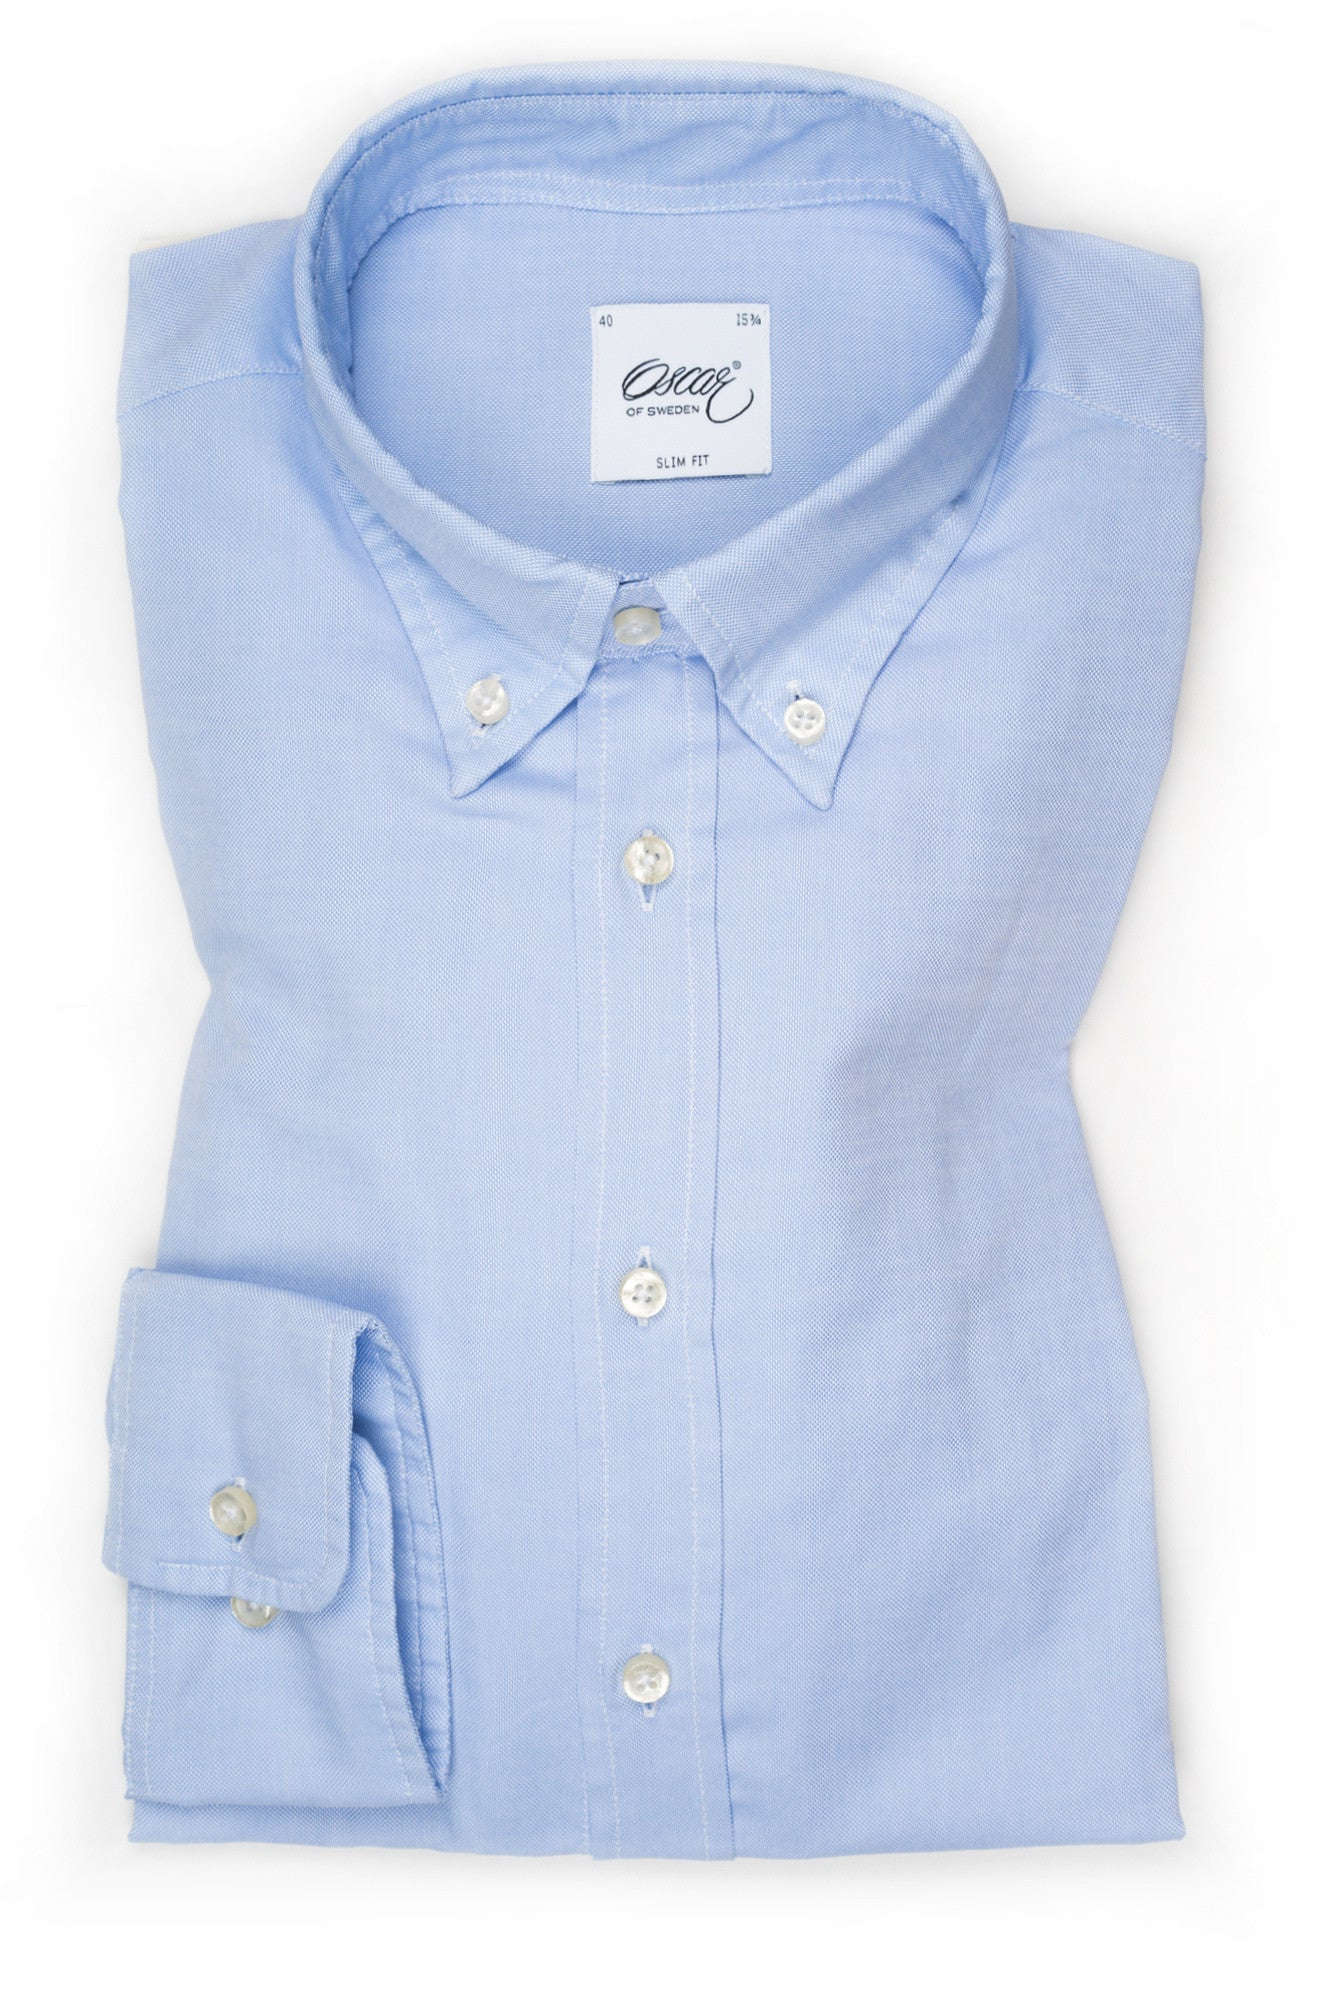 "Oscar of Sweden ""Light Blue Button-Down Collar"" Shirt (Slim Fit)"